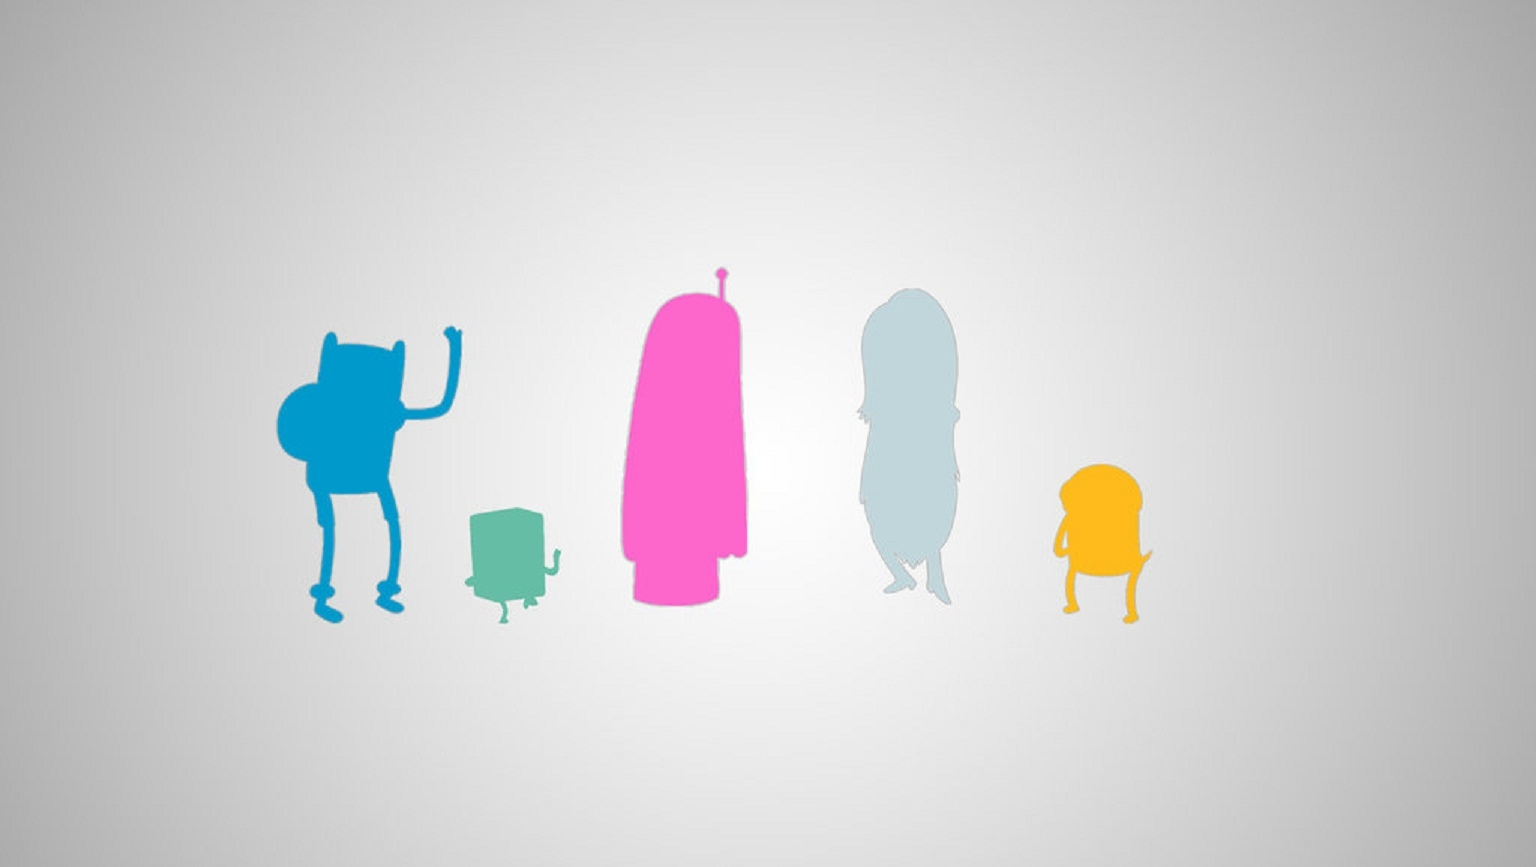 Colored Shadows   Adventure Time Wallpaper 1536x867 87422 1536x867